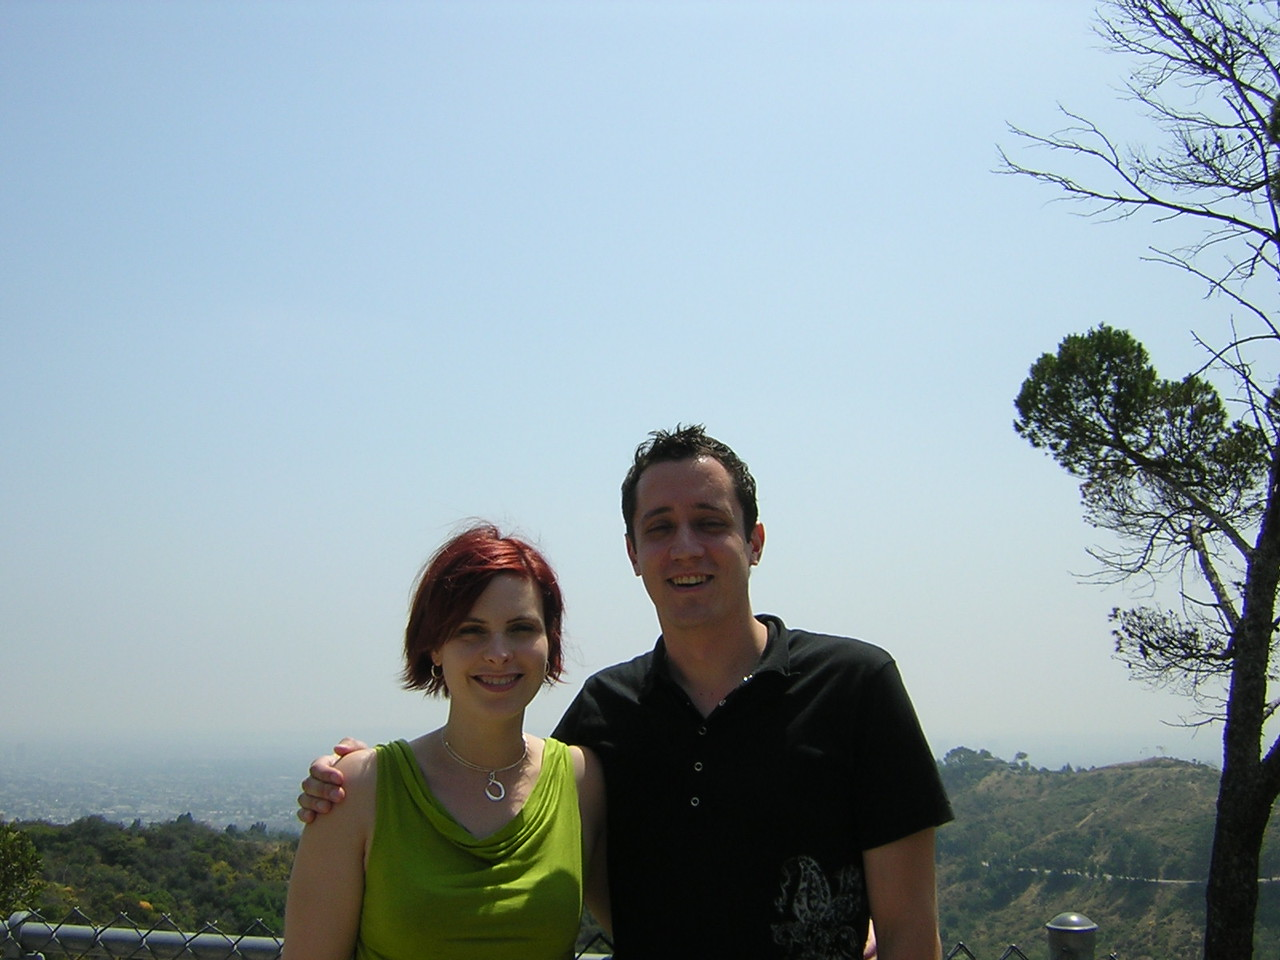 Griffith Park by the Observatory (which was unfortunately closed)nDSCN3154